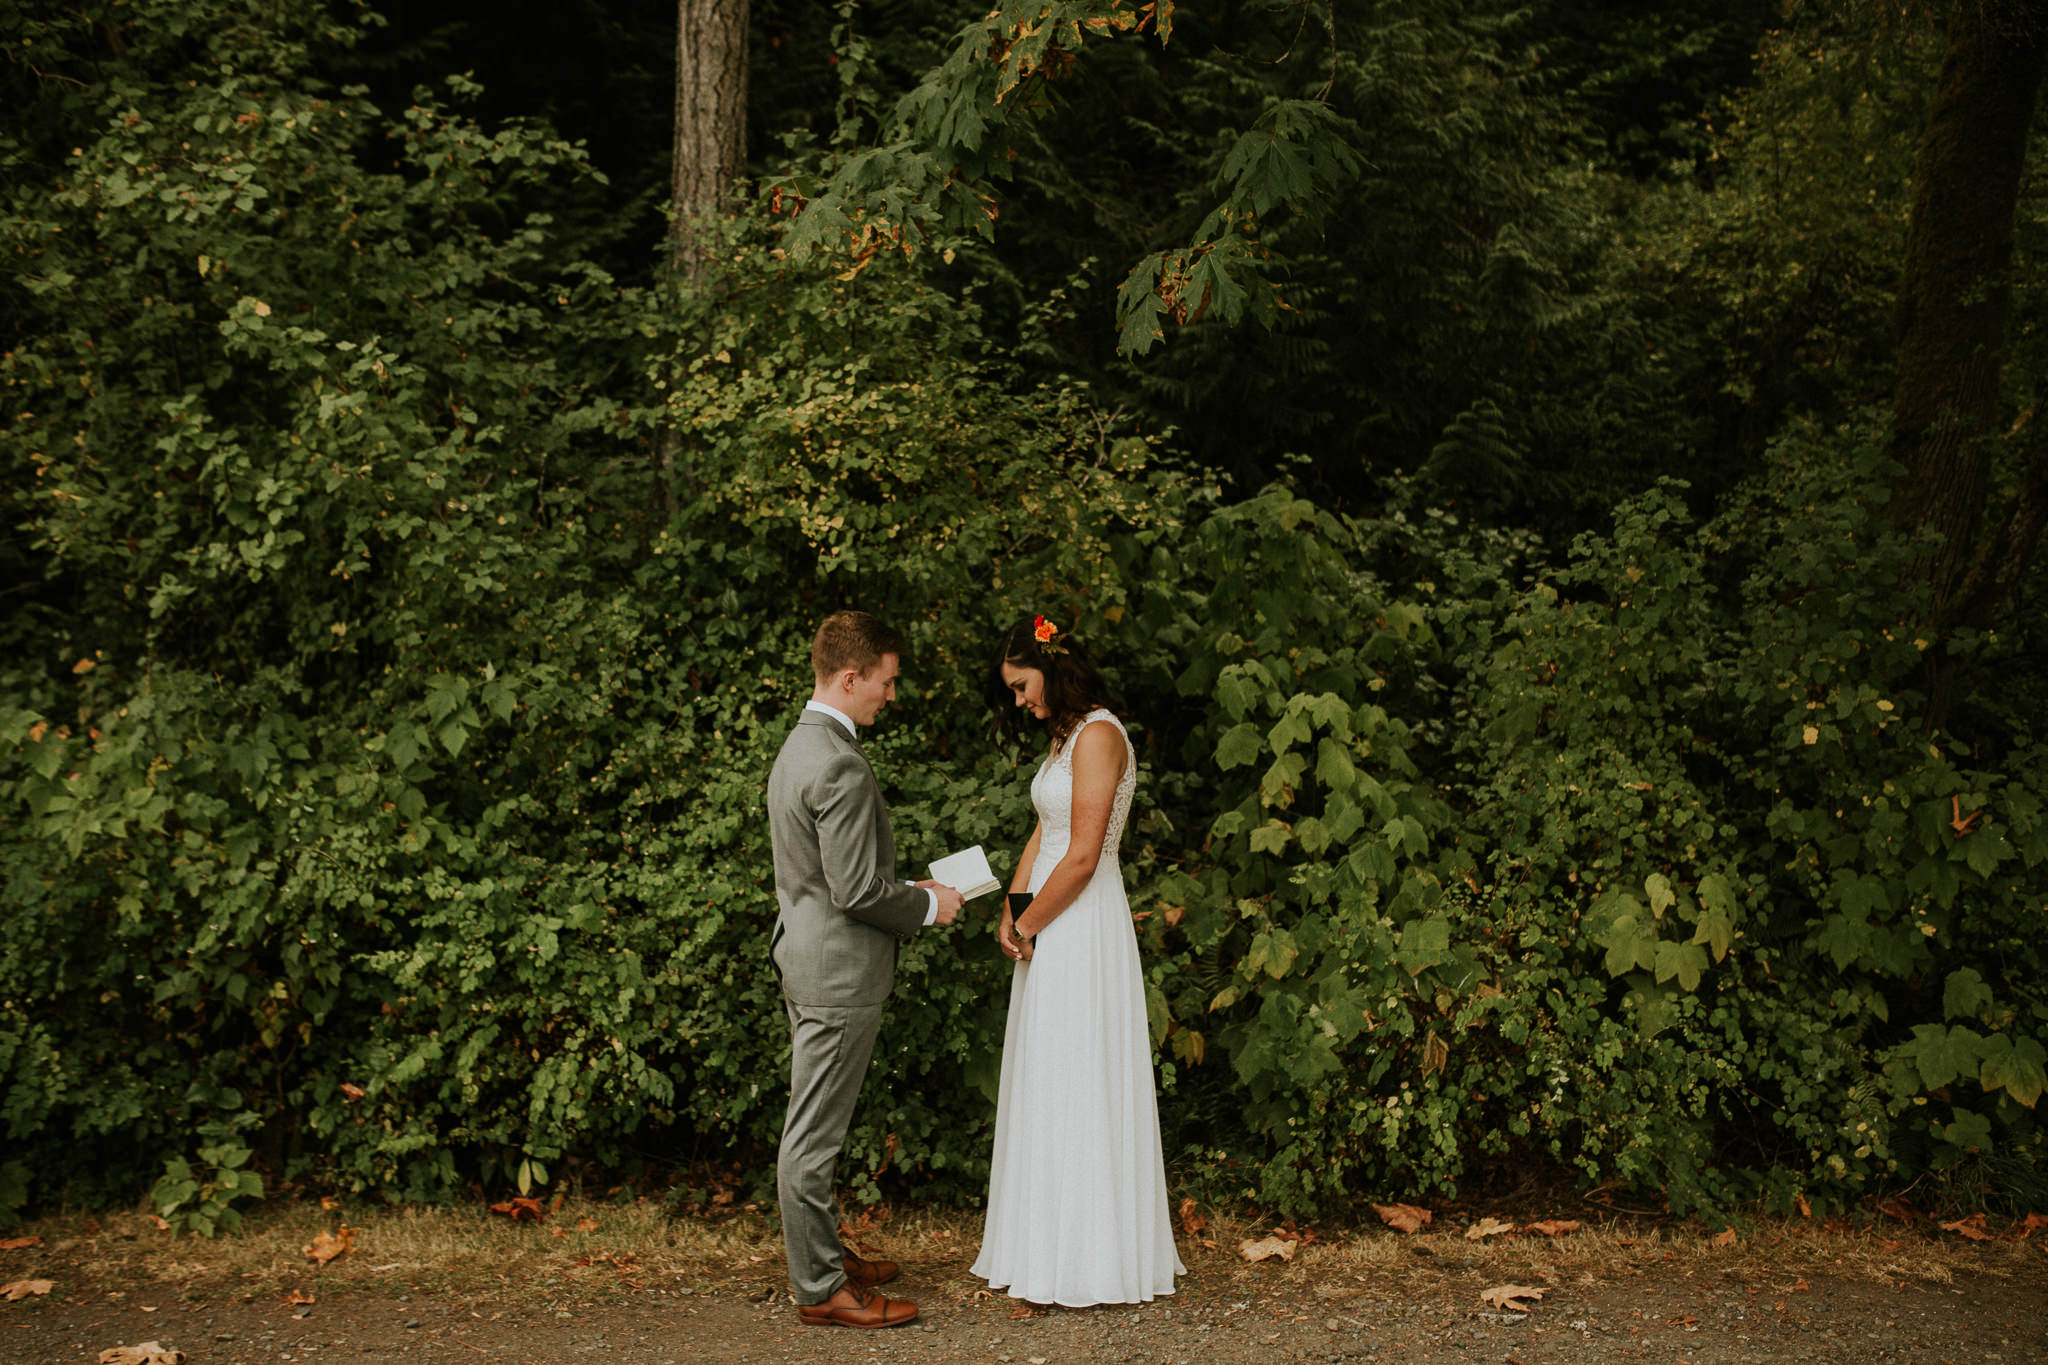 Port-Orchard-Manchester-Park-elopement-Bride-And-Groom-19.jpg